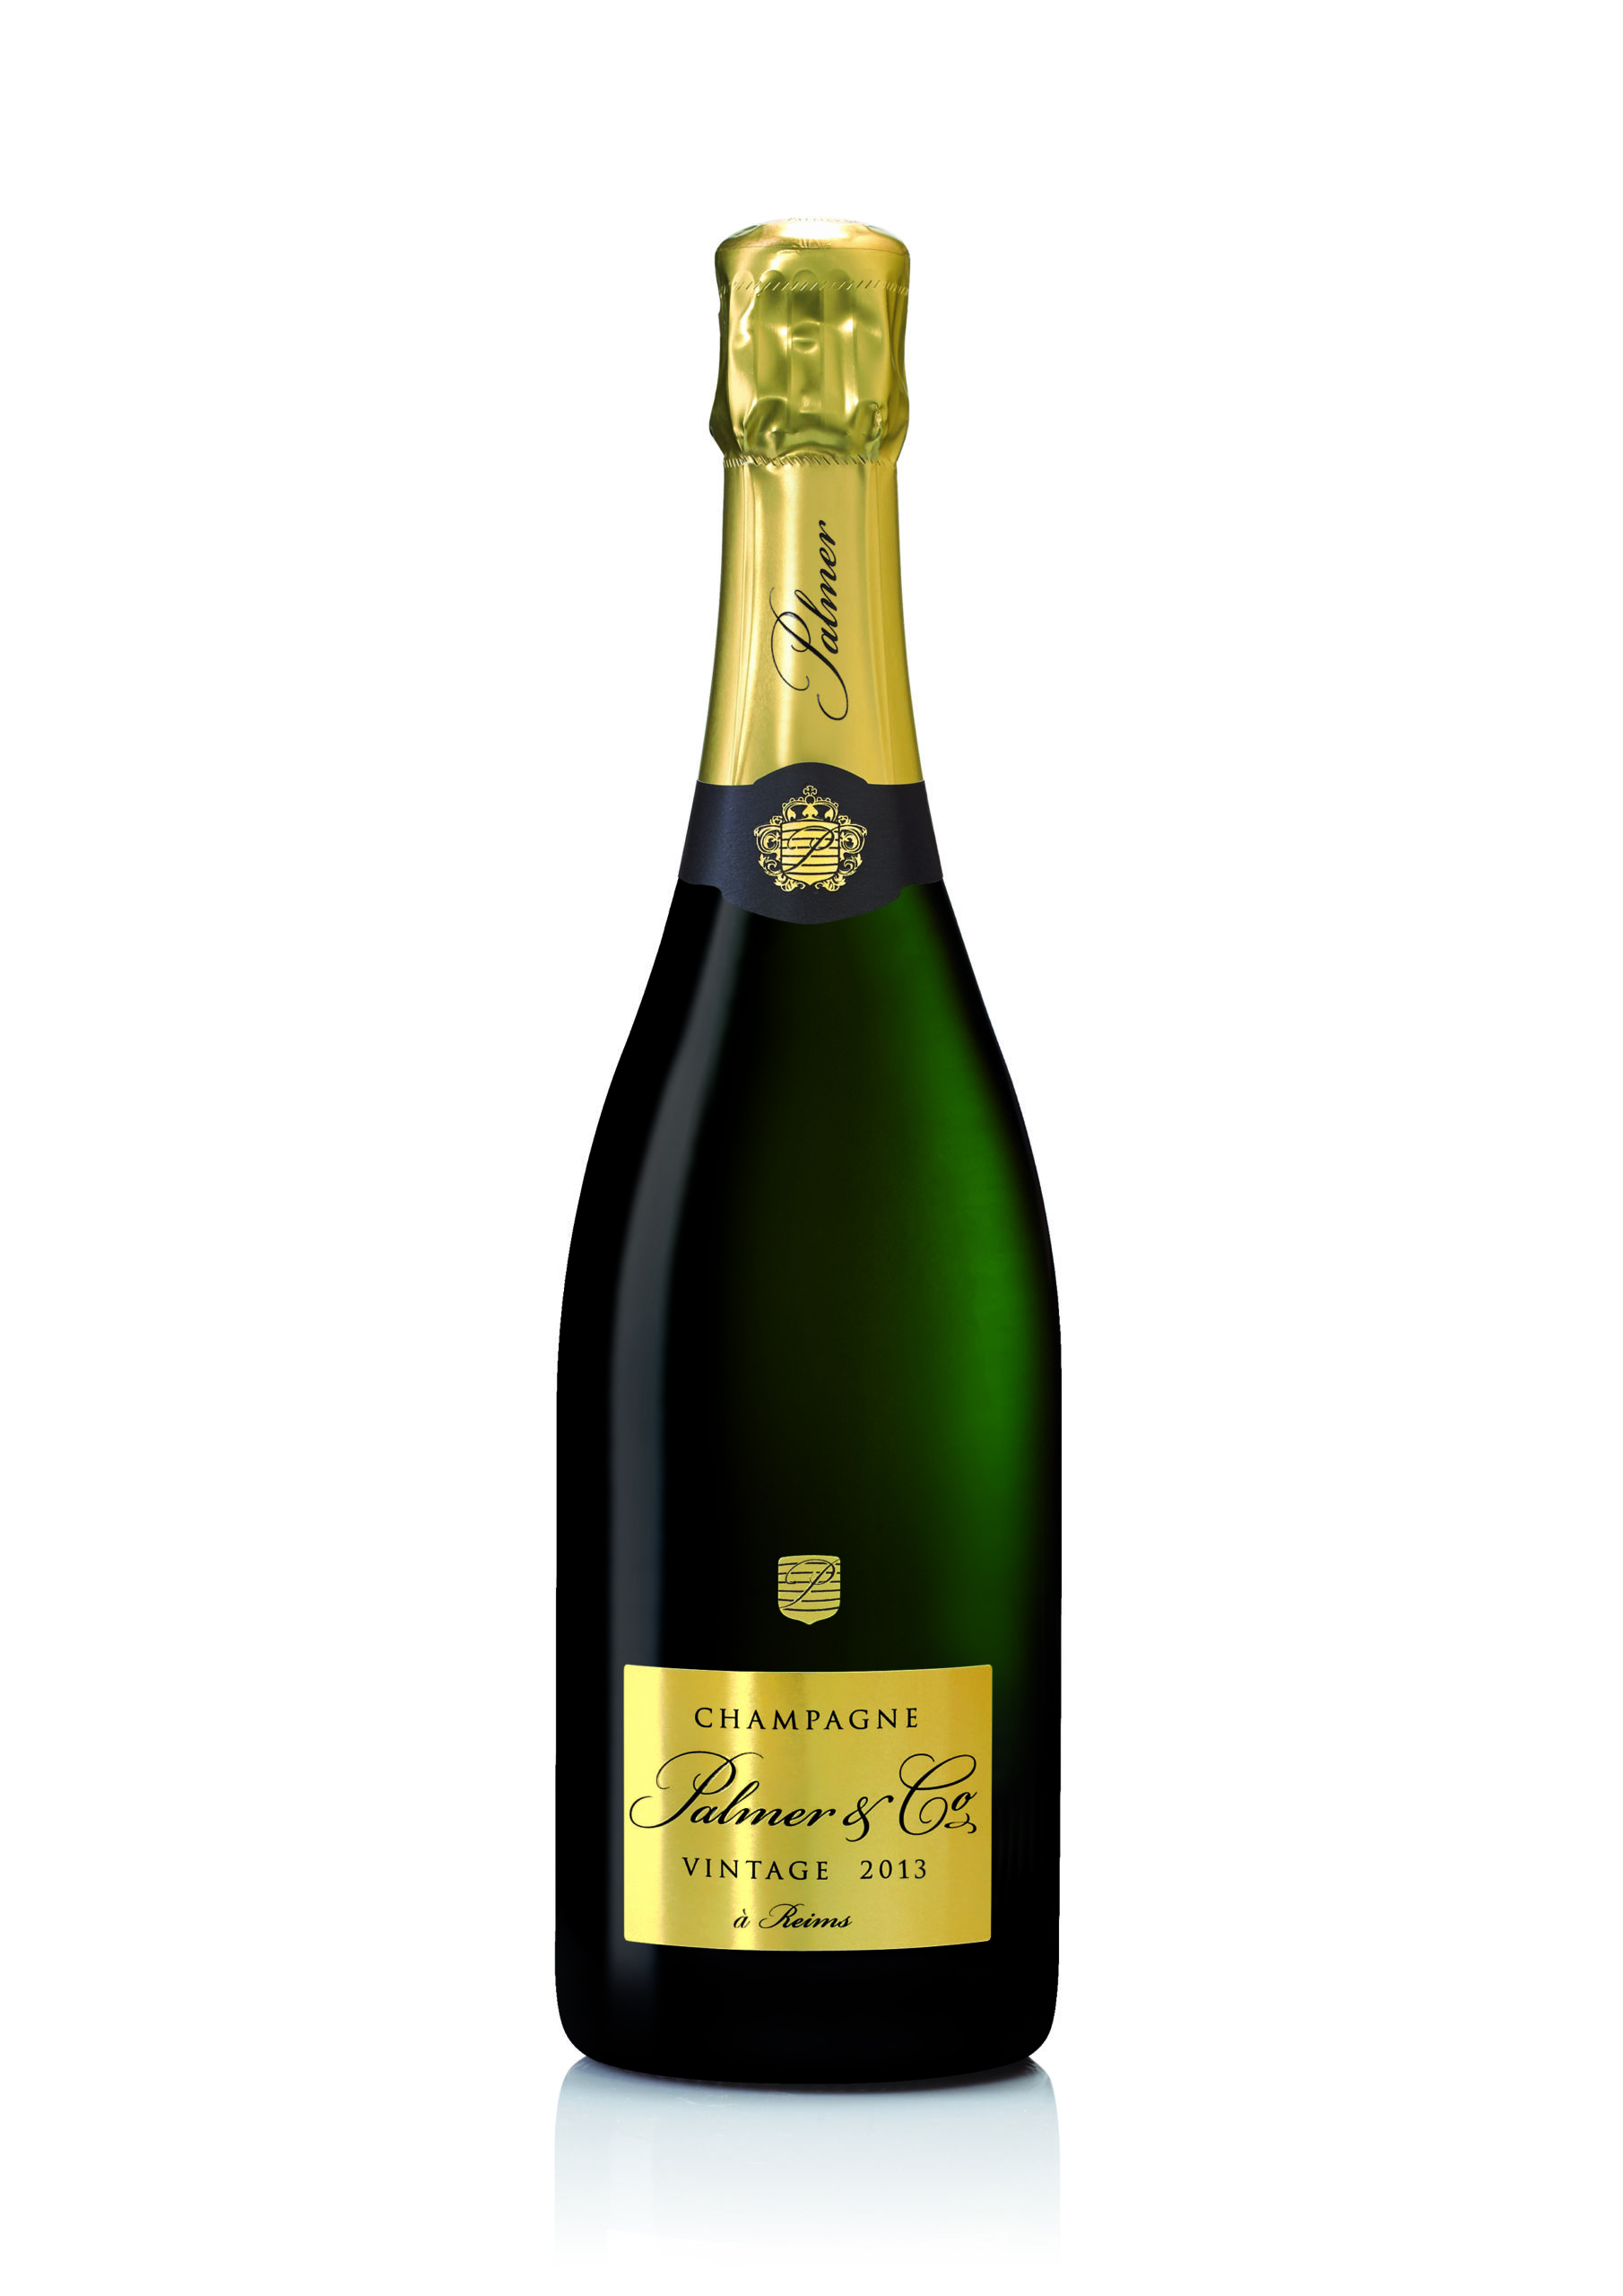 bottle of Champagne Palmer and Co Vintage 2013